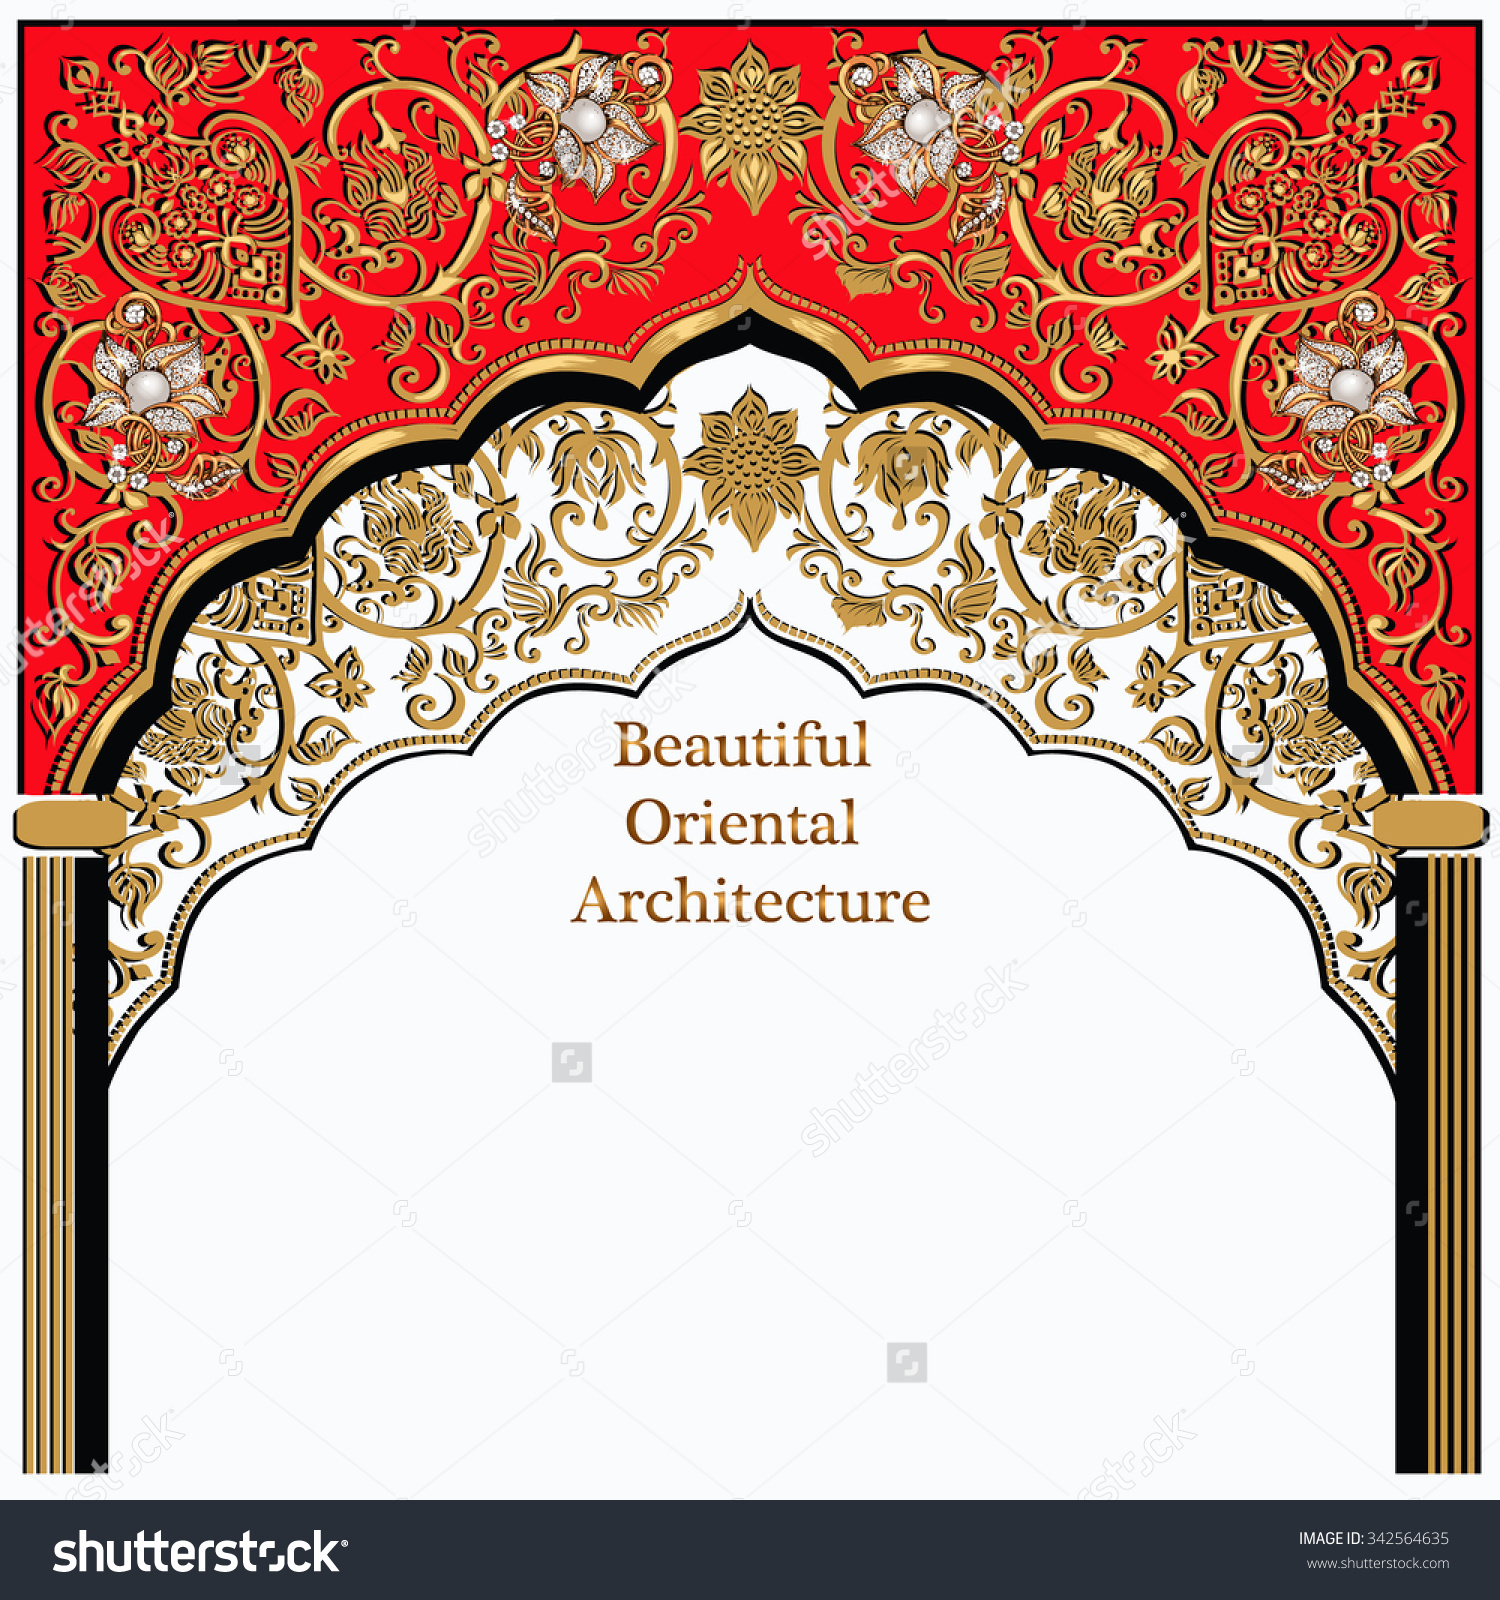 Arabic temple clipart png free stock Indian Architectureindian Temple Architectural Archarchitecture ... png free stock